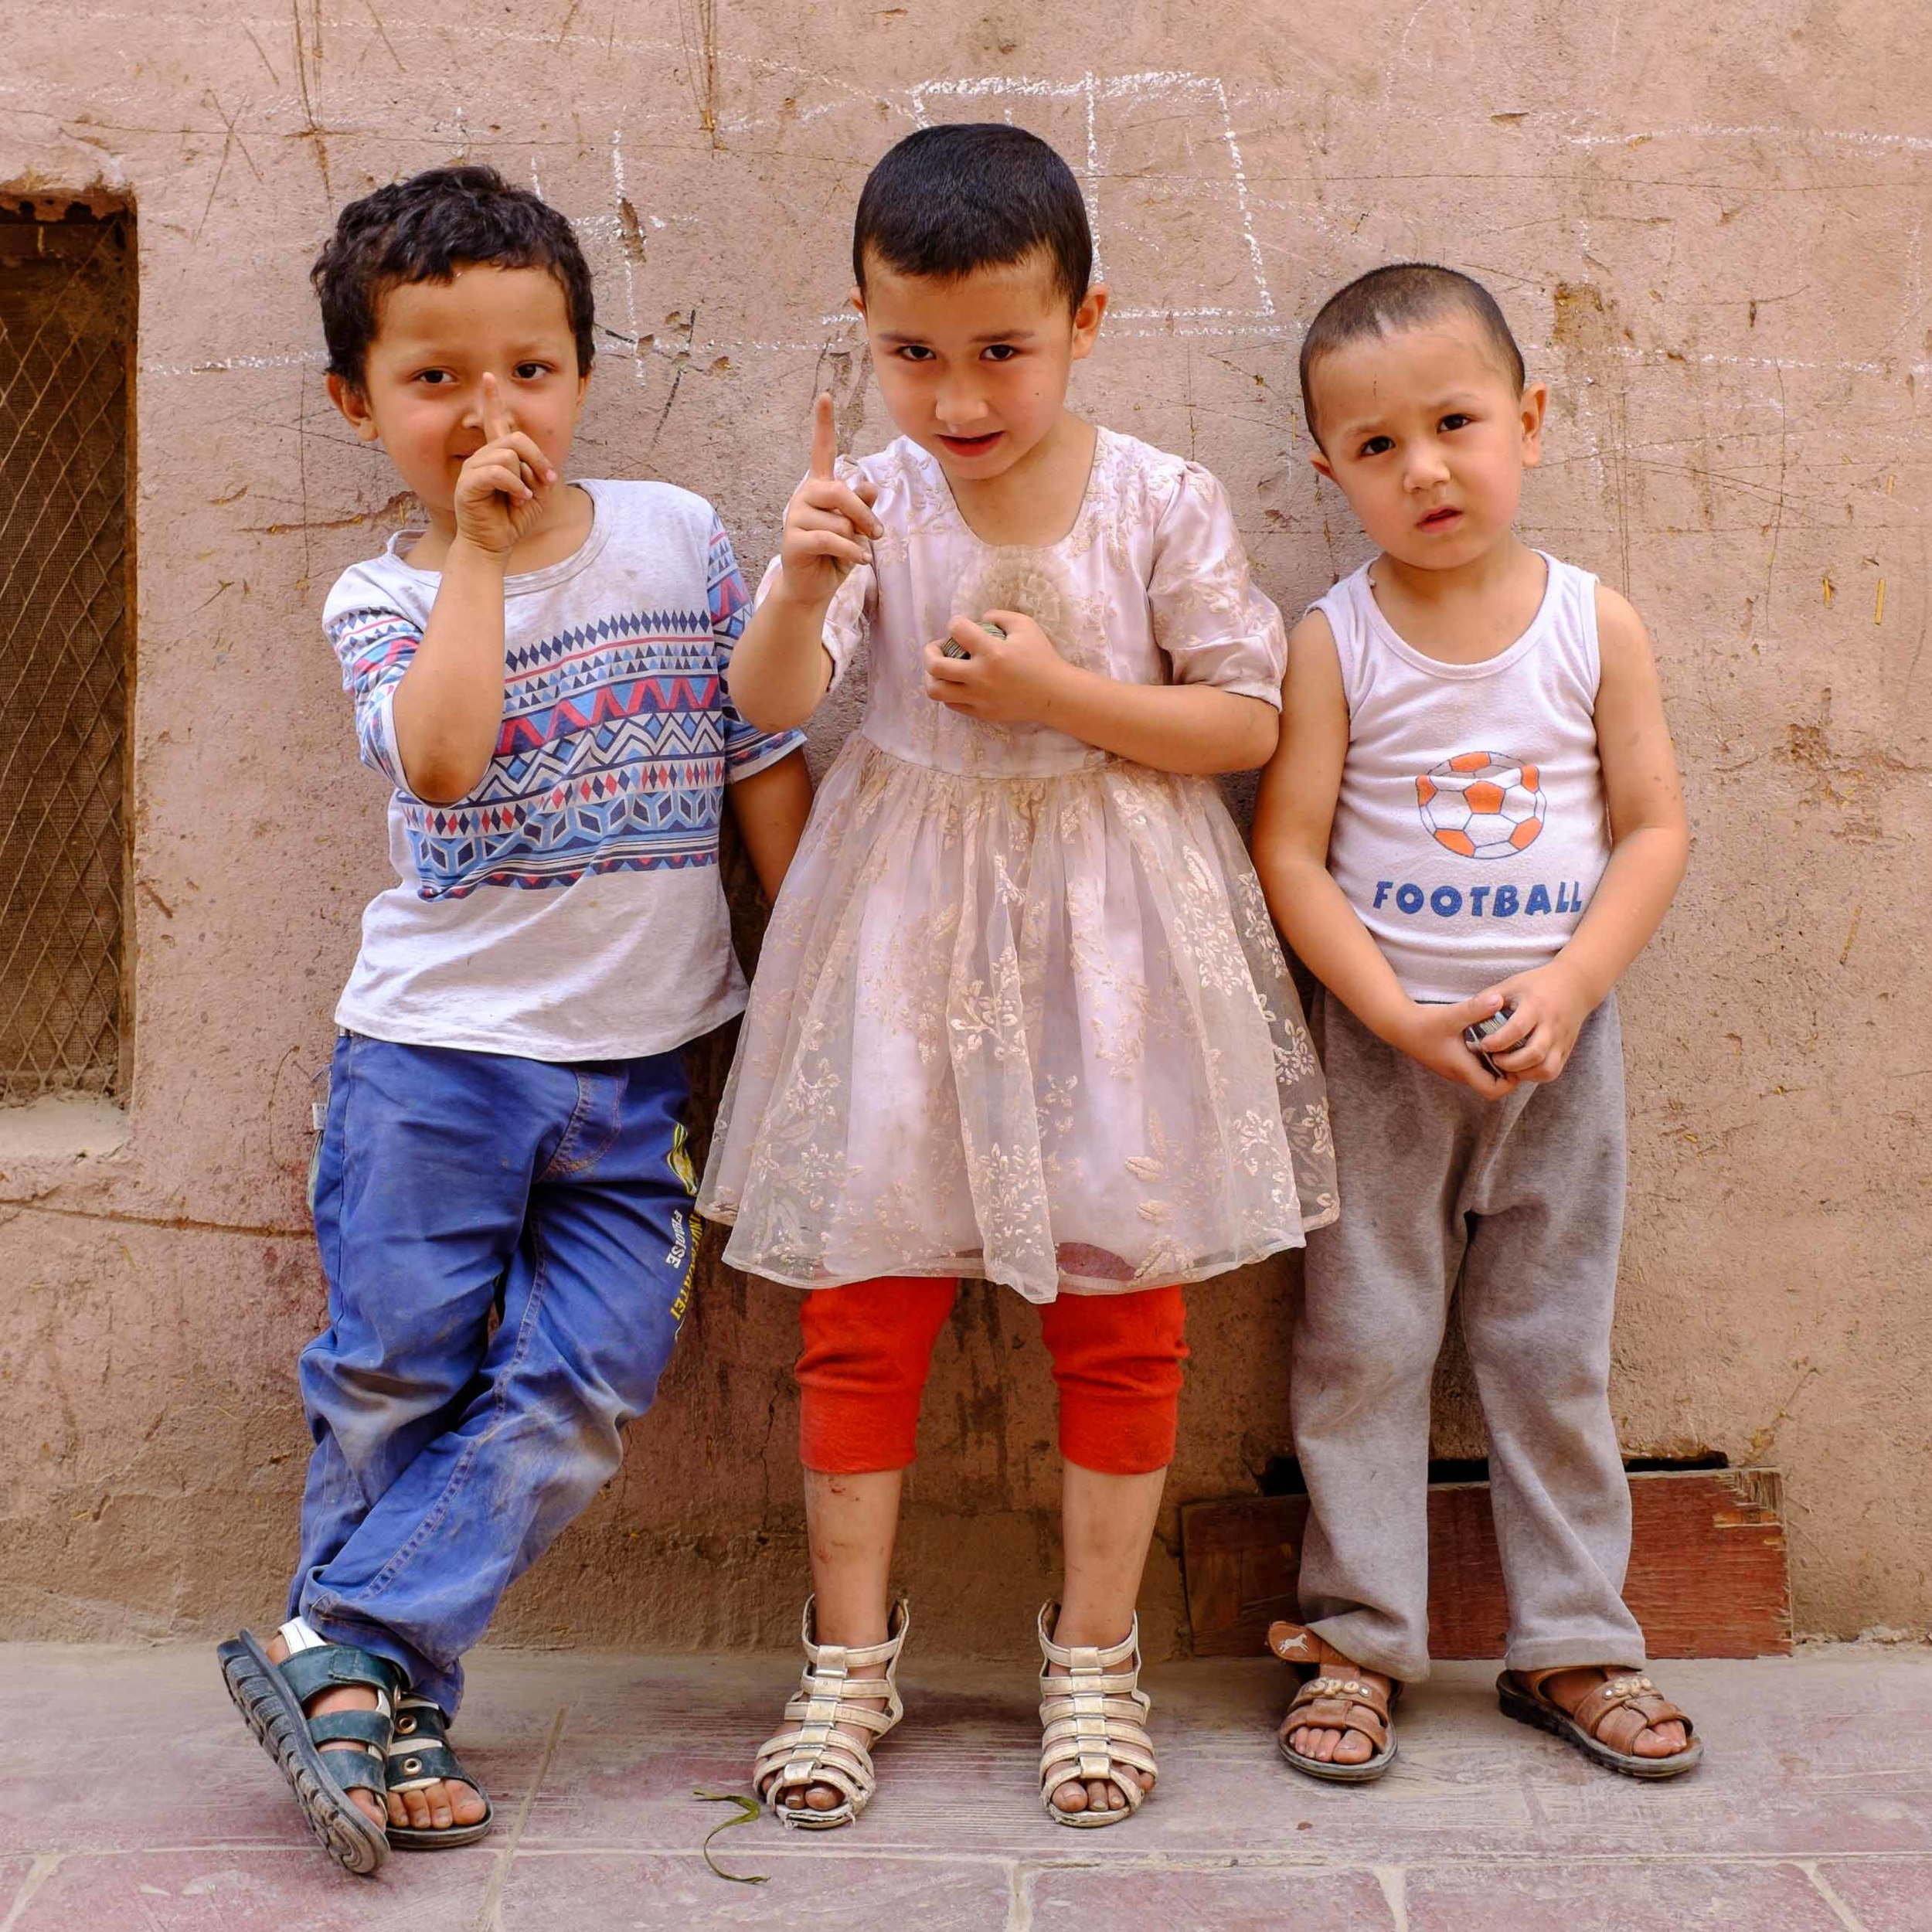 These kids were playing with Pogs in the street but leapt up to pose when they saw my camera.